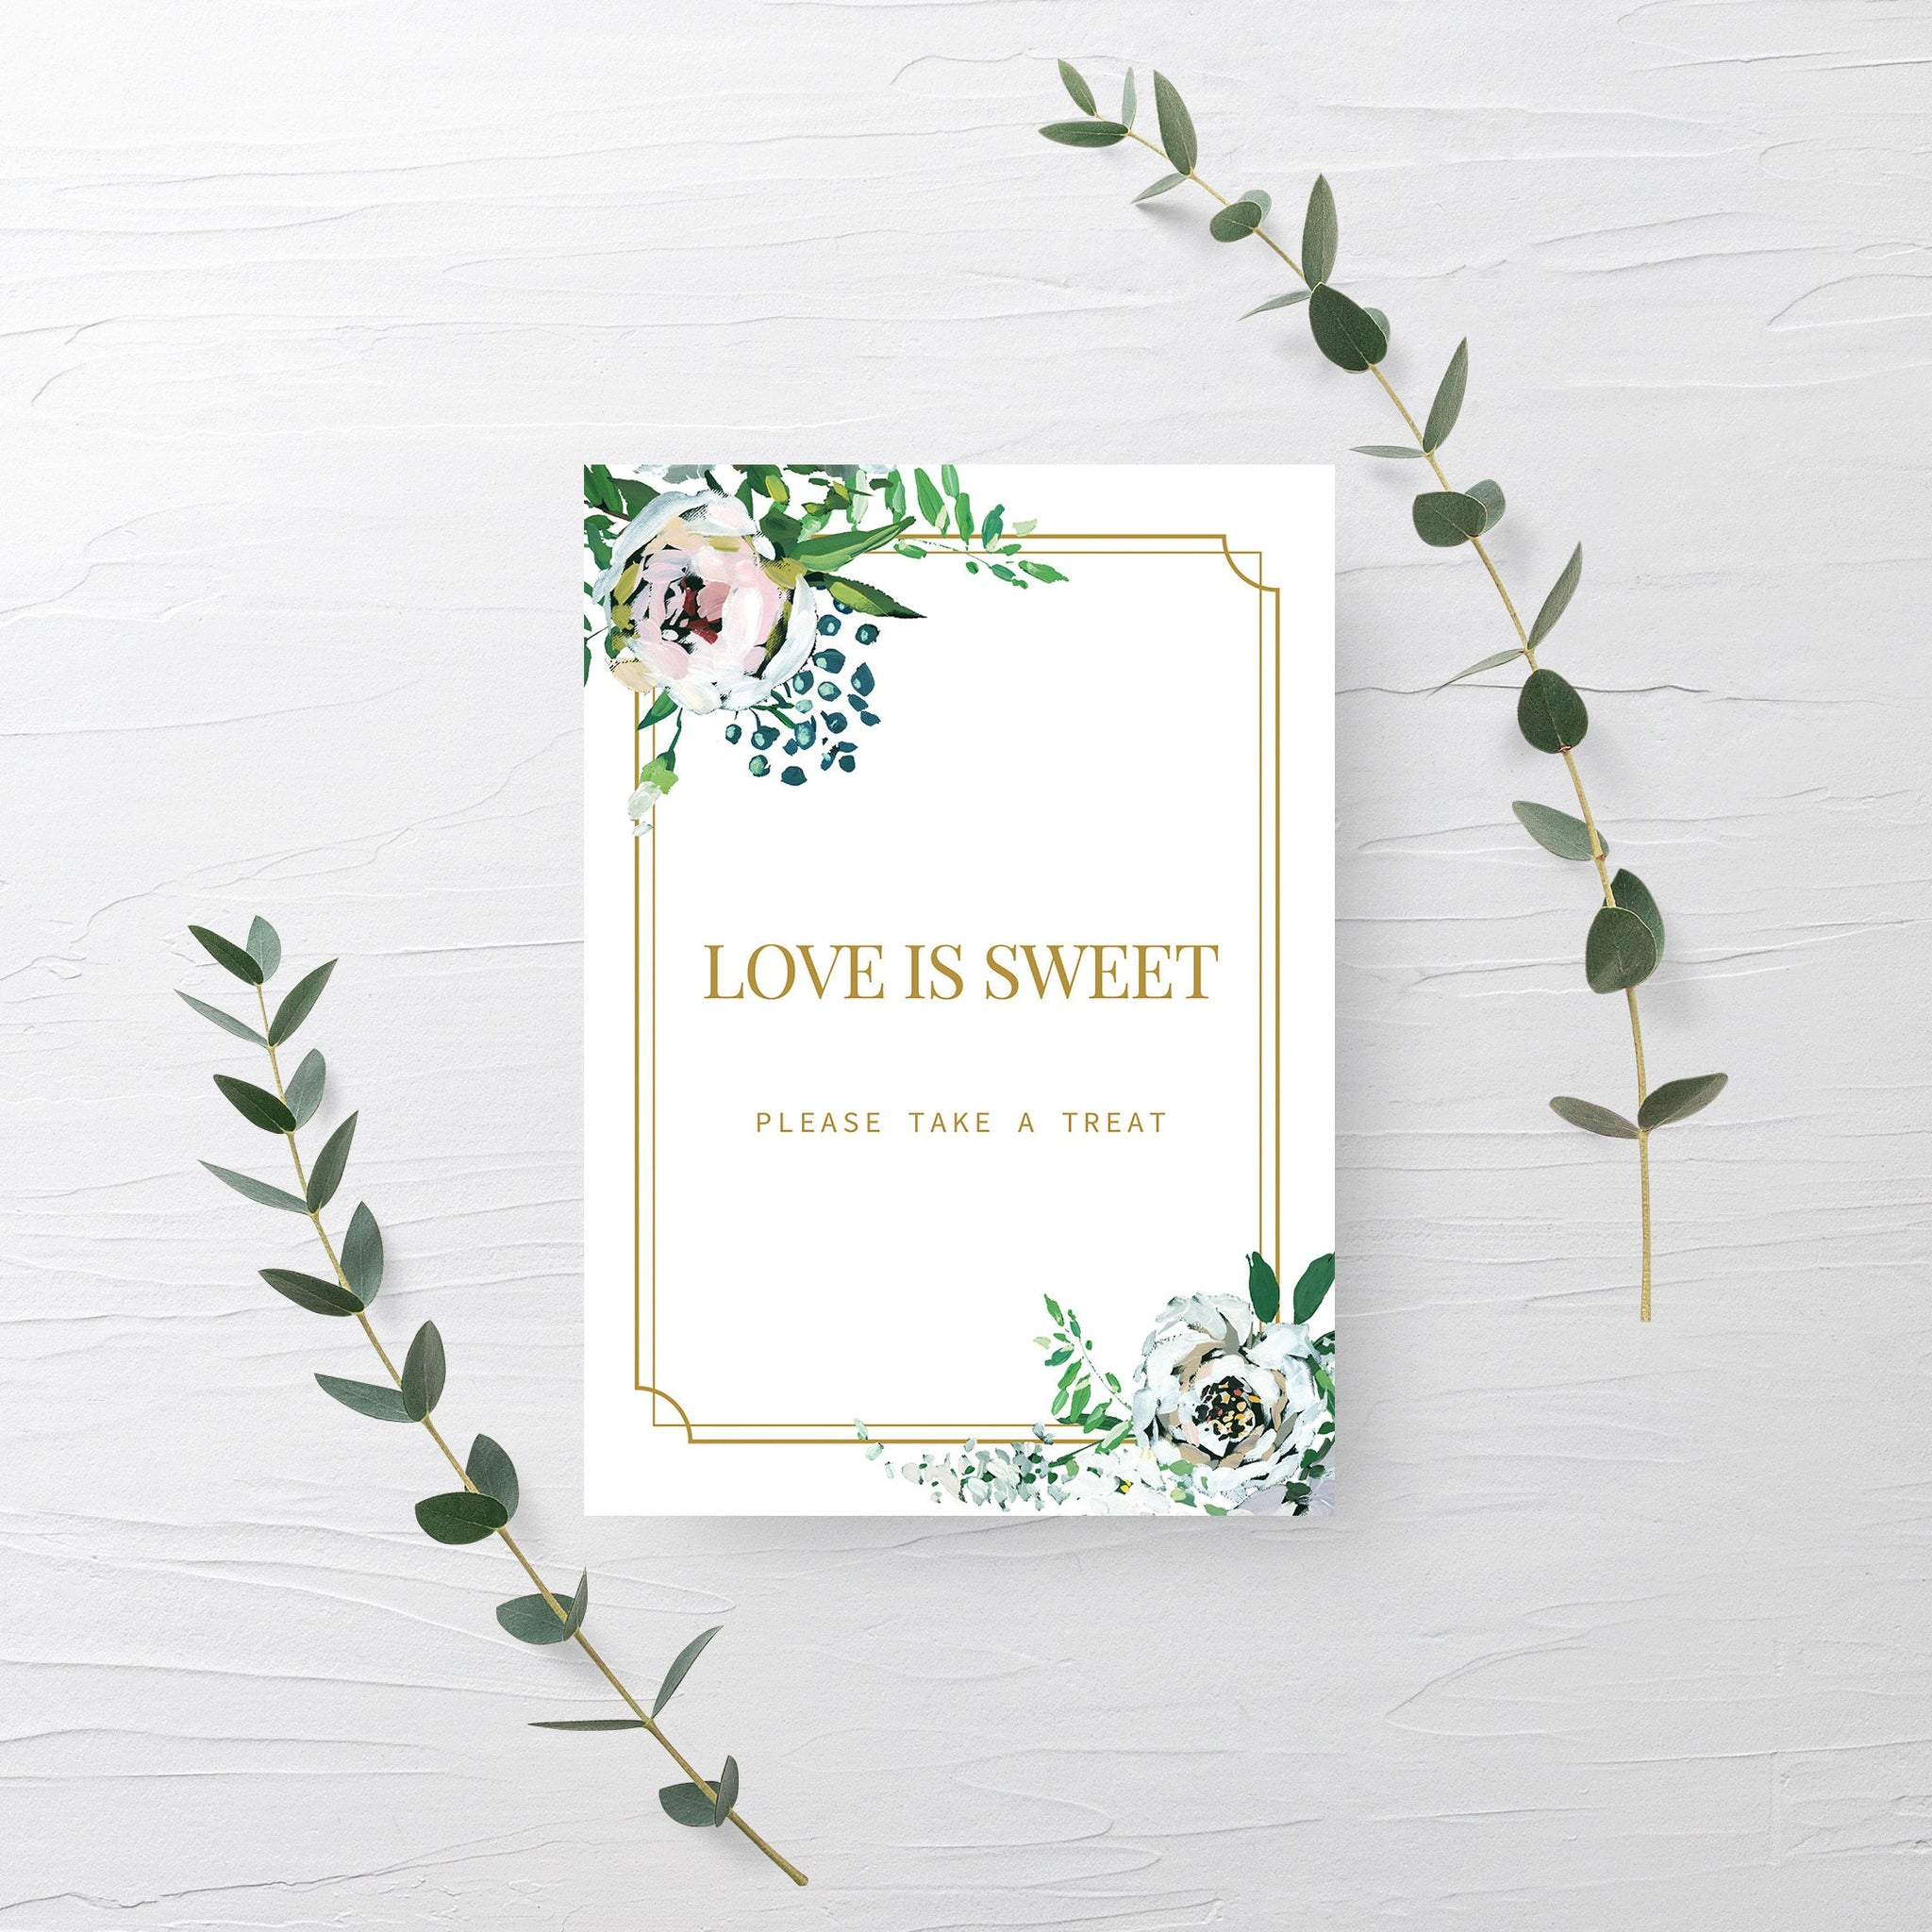 Blush Floral Greenery Love is Sweet Treat Sign Printable INSTANT DOWNLOAD, Gold Bridal Shower Dessert Table Decorations  - BGF100 - @PlumPolkaDot